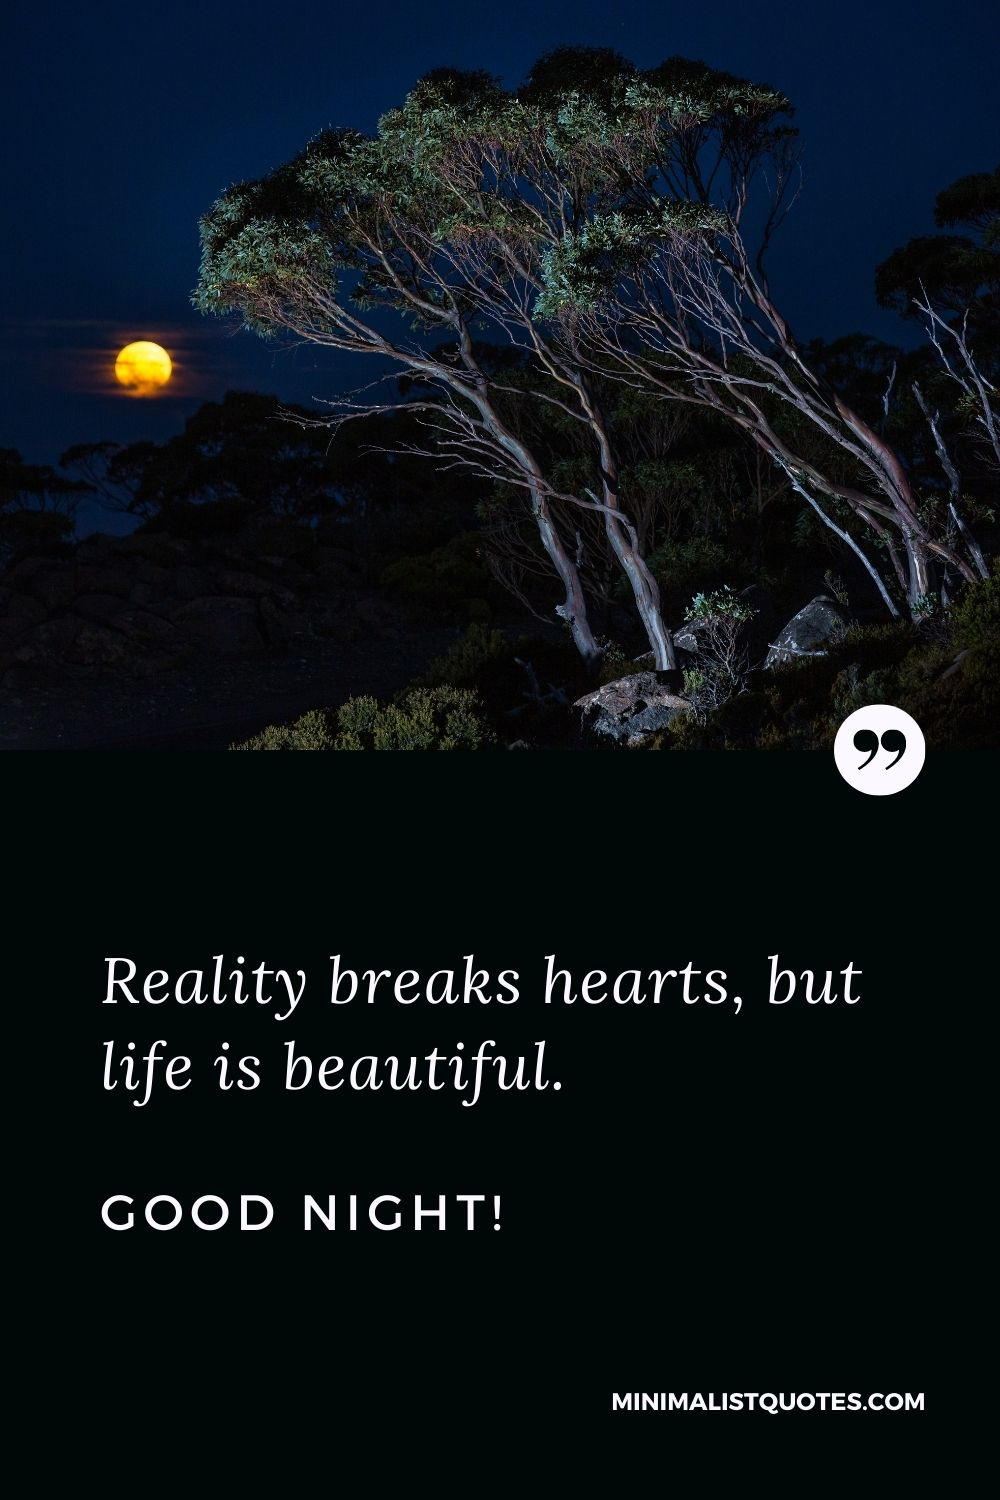 Good Night Quote, Wish & Message With Image: Reality breaks hearts, but life is beautiful. Good night!